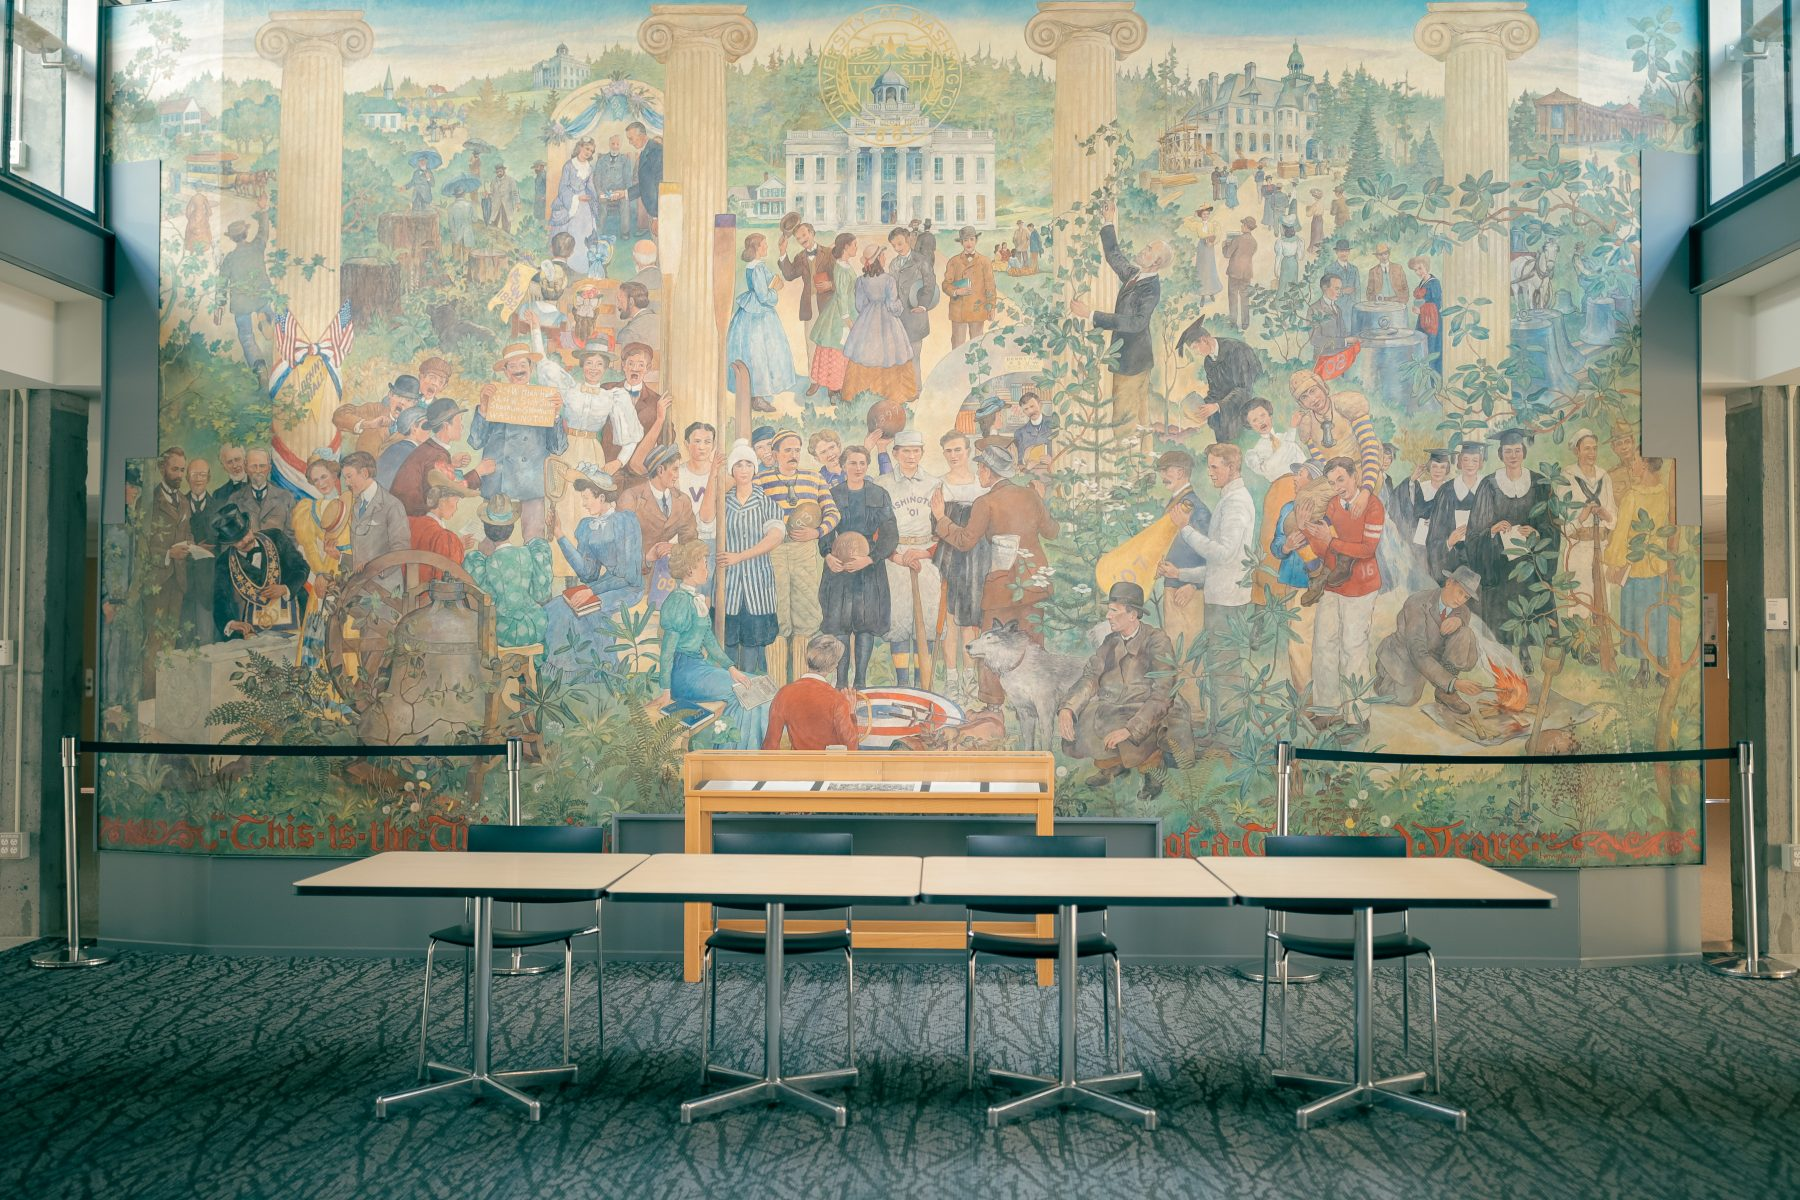 The Mural Lounge is frequently used as a registration area for North Ballroom and Both Ballroom events. Additional rental fees will apply.